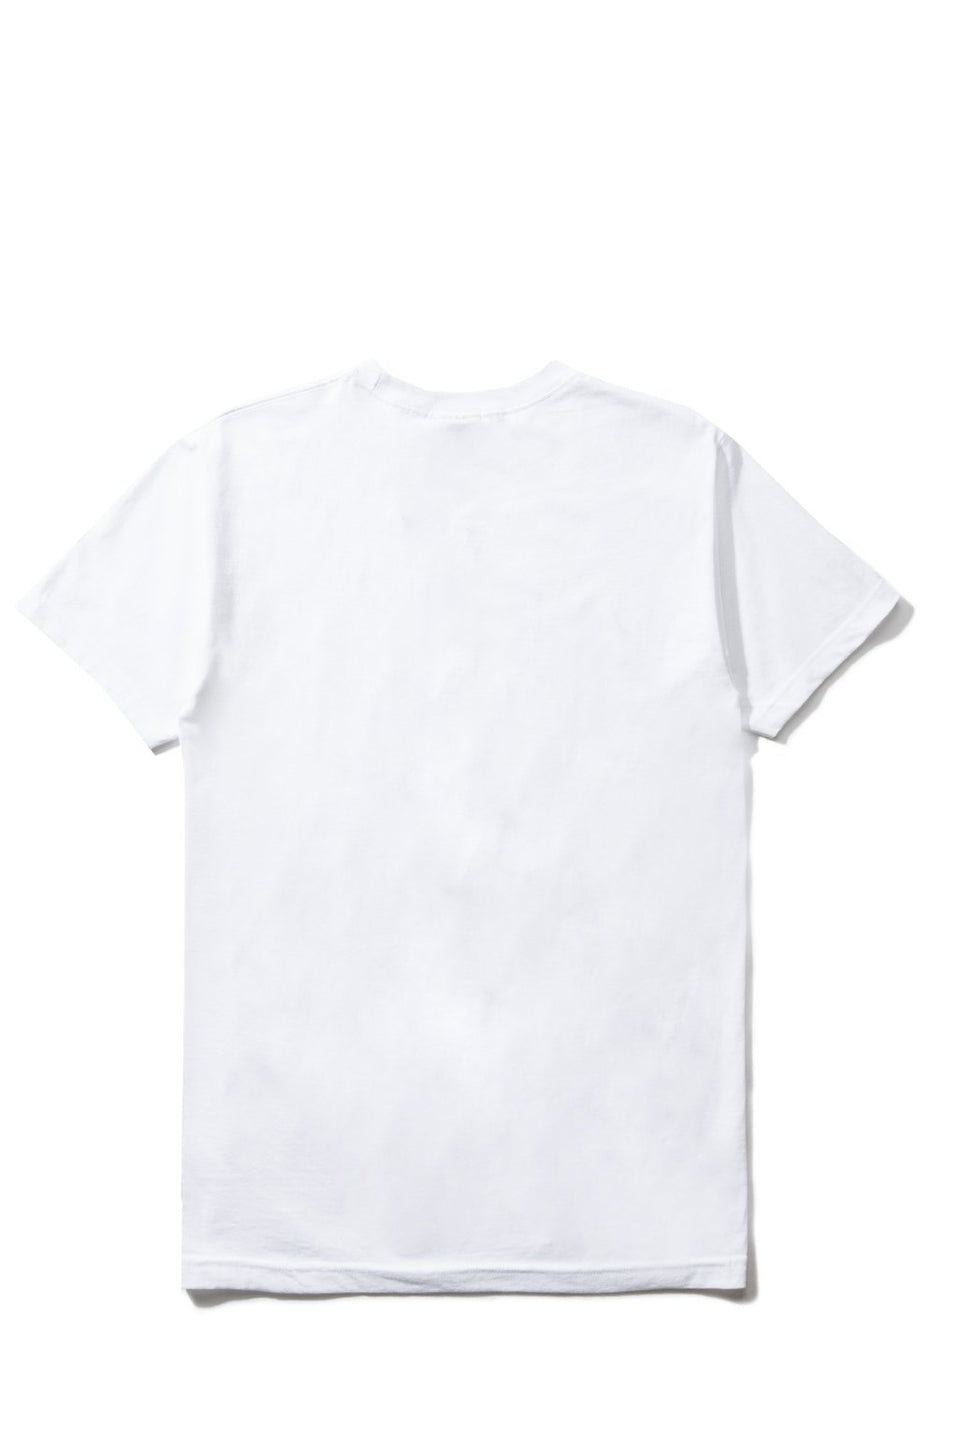 Spectrum Slant T-Shirt-TOPS-The Hundreds UK